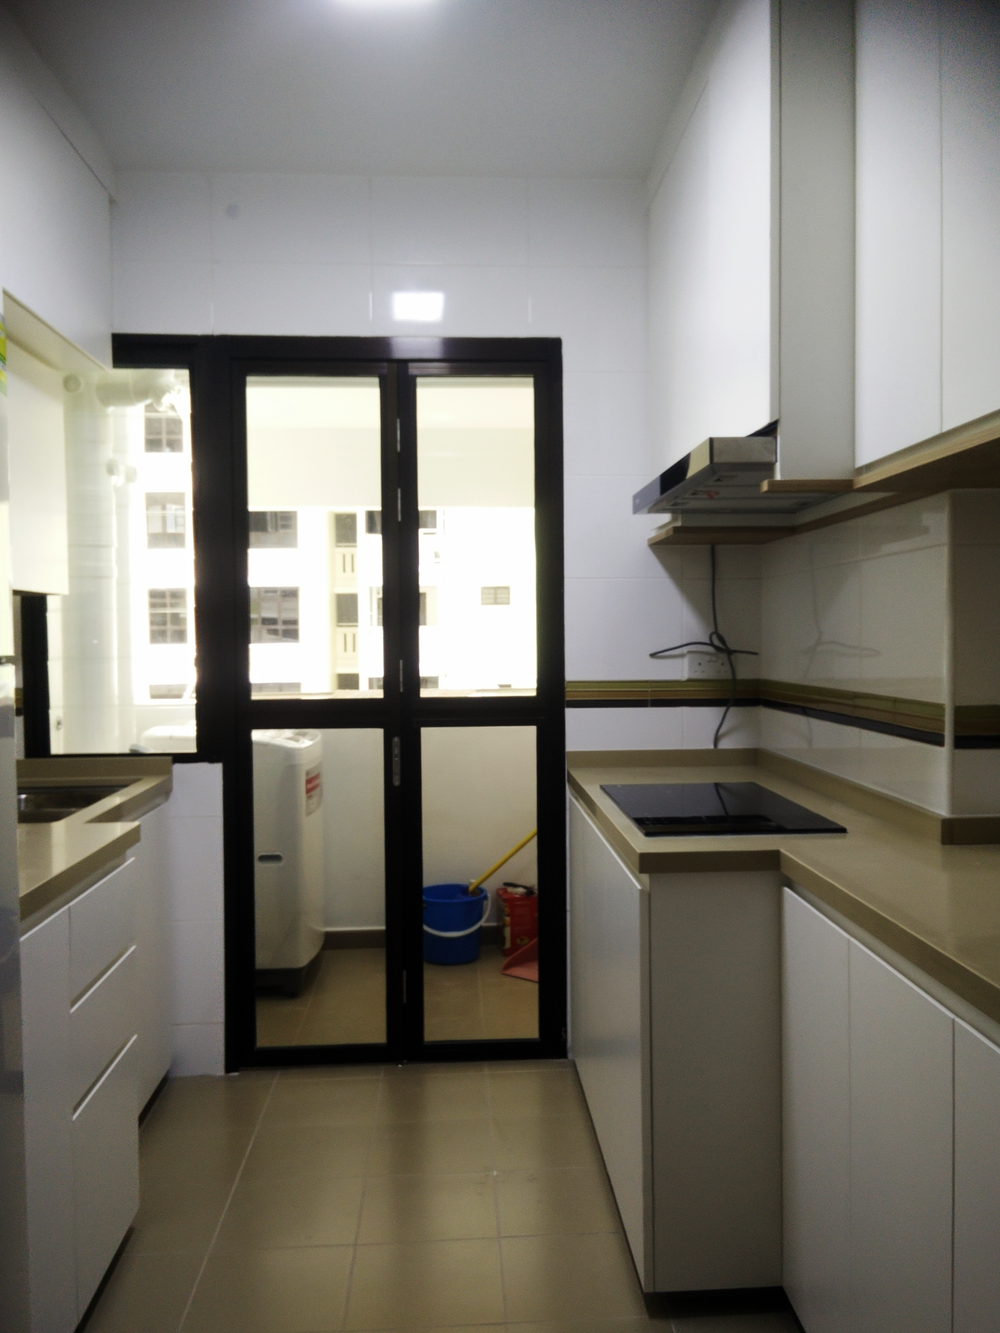 Bto kitchen design basic elements for hdb bto 3 rm flat jadier hdb interior design singapore Best hdb kitchen design